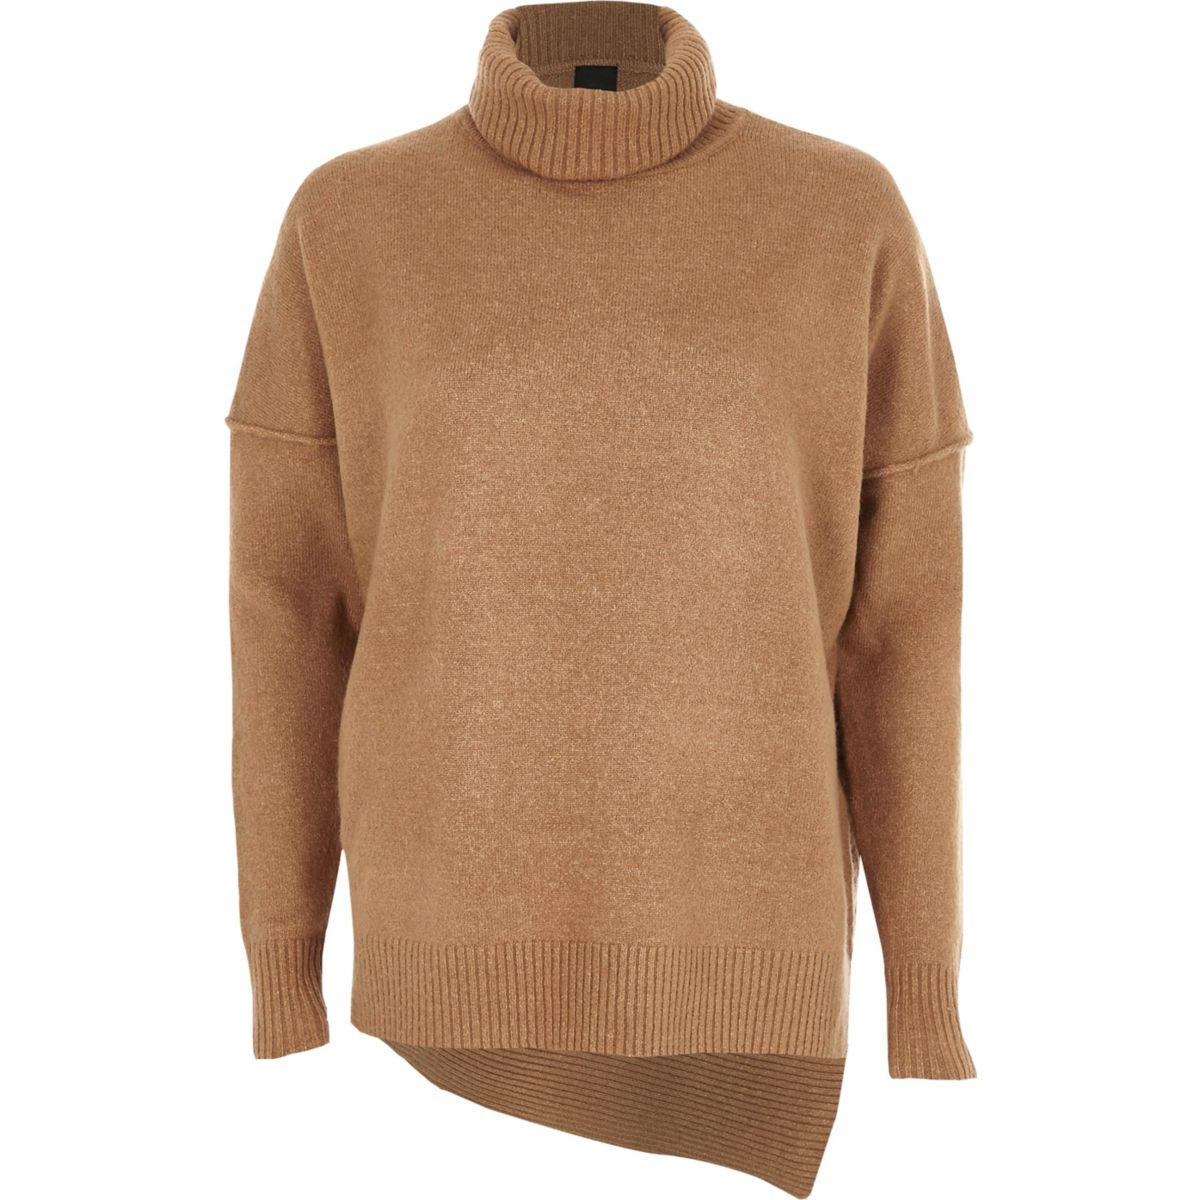 Camel asymmetric hem roll neck knit jumper